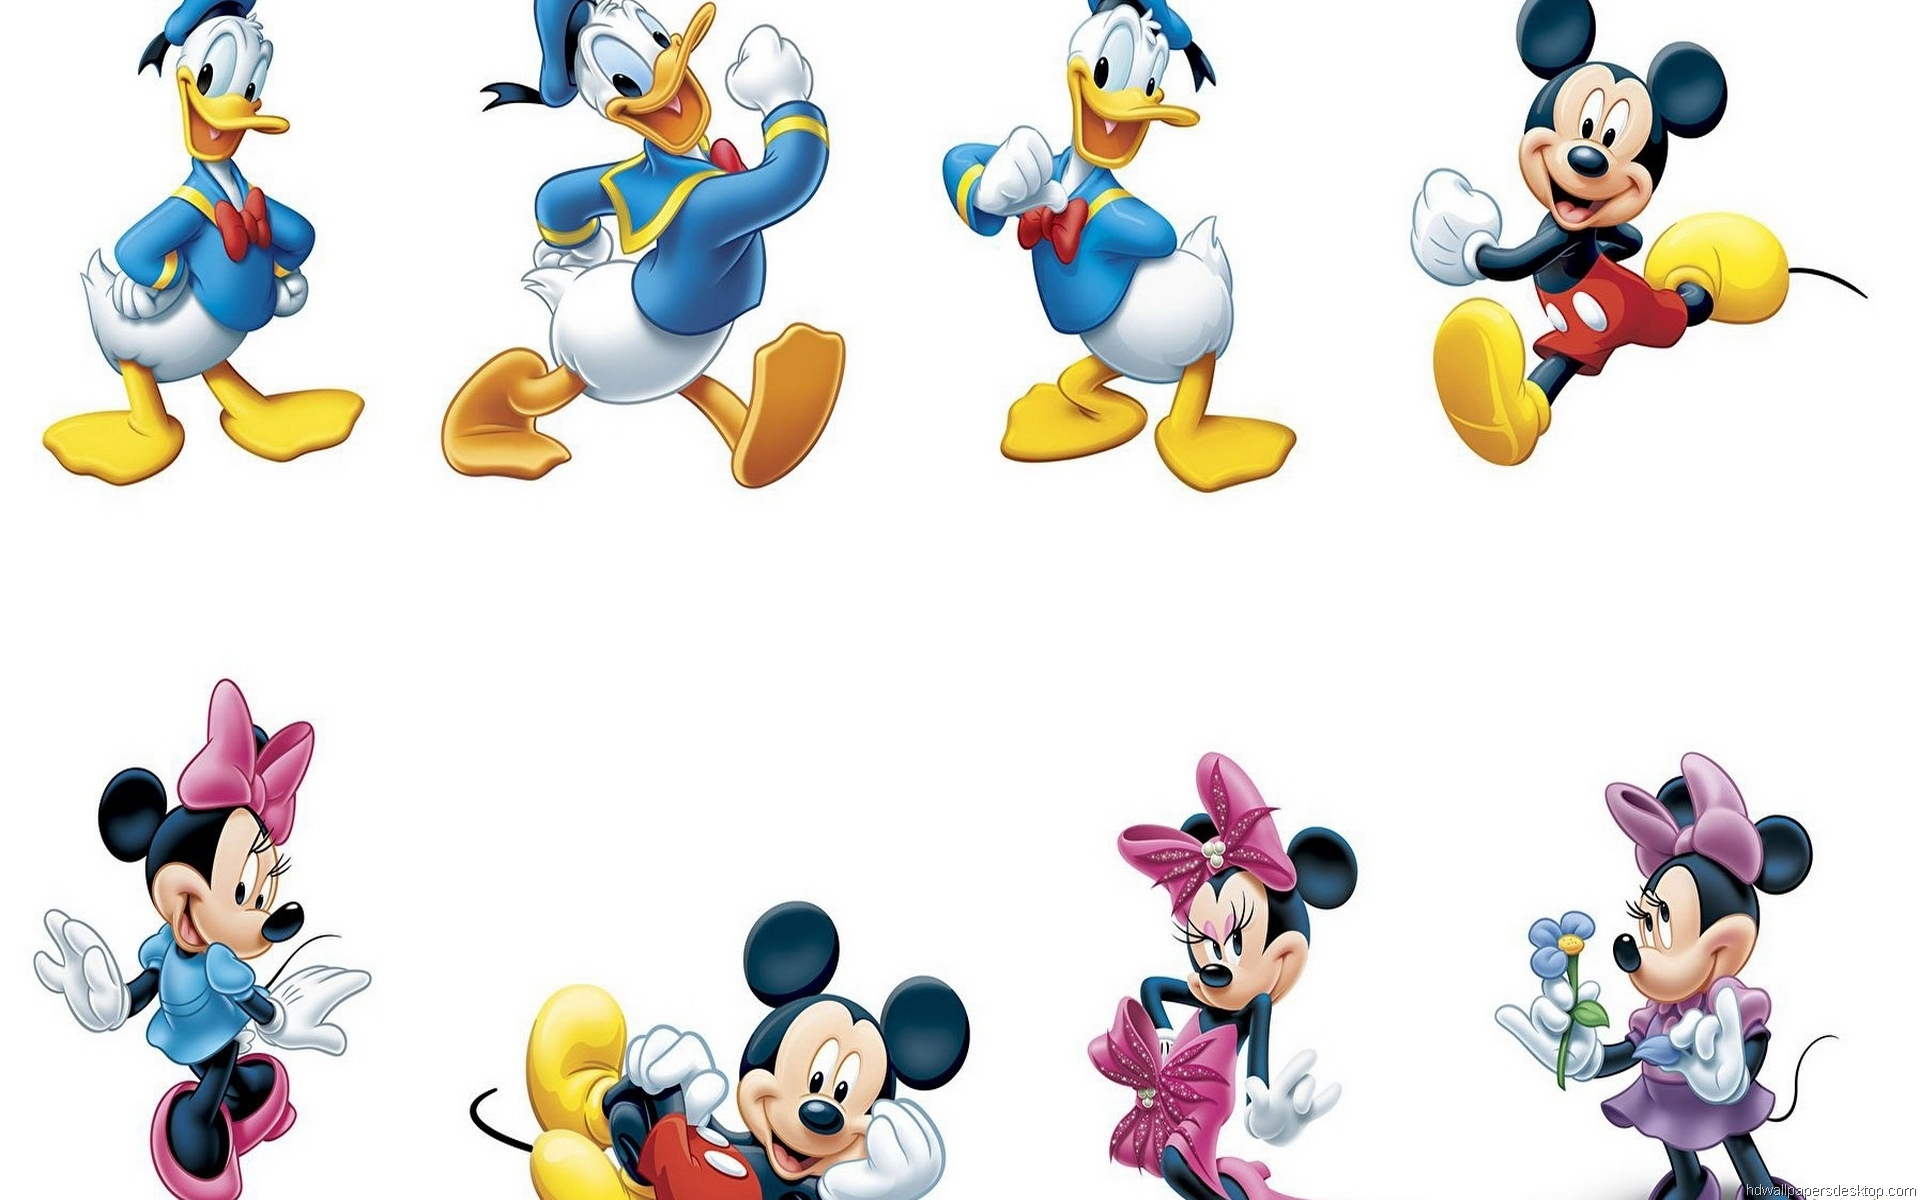 Cartoon Characters Pictures : Wallpaper of cartoon characters wallpapersafari